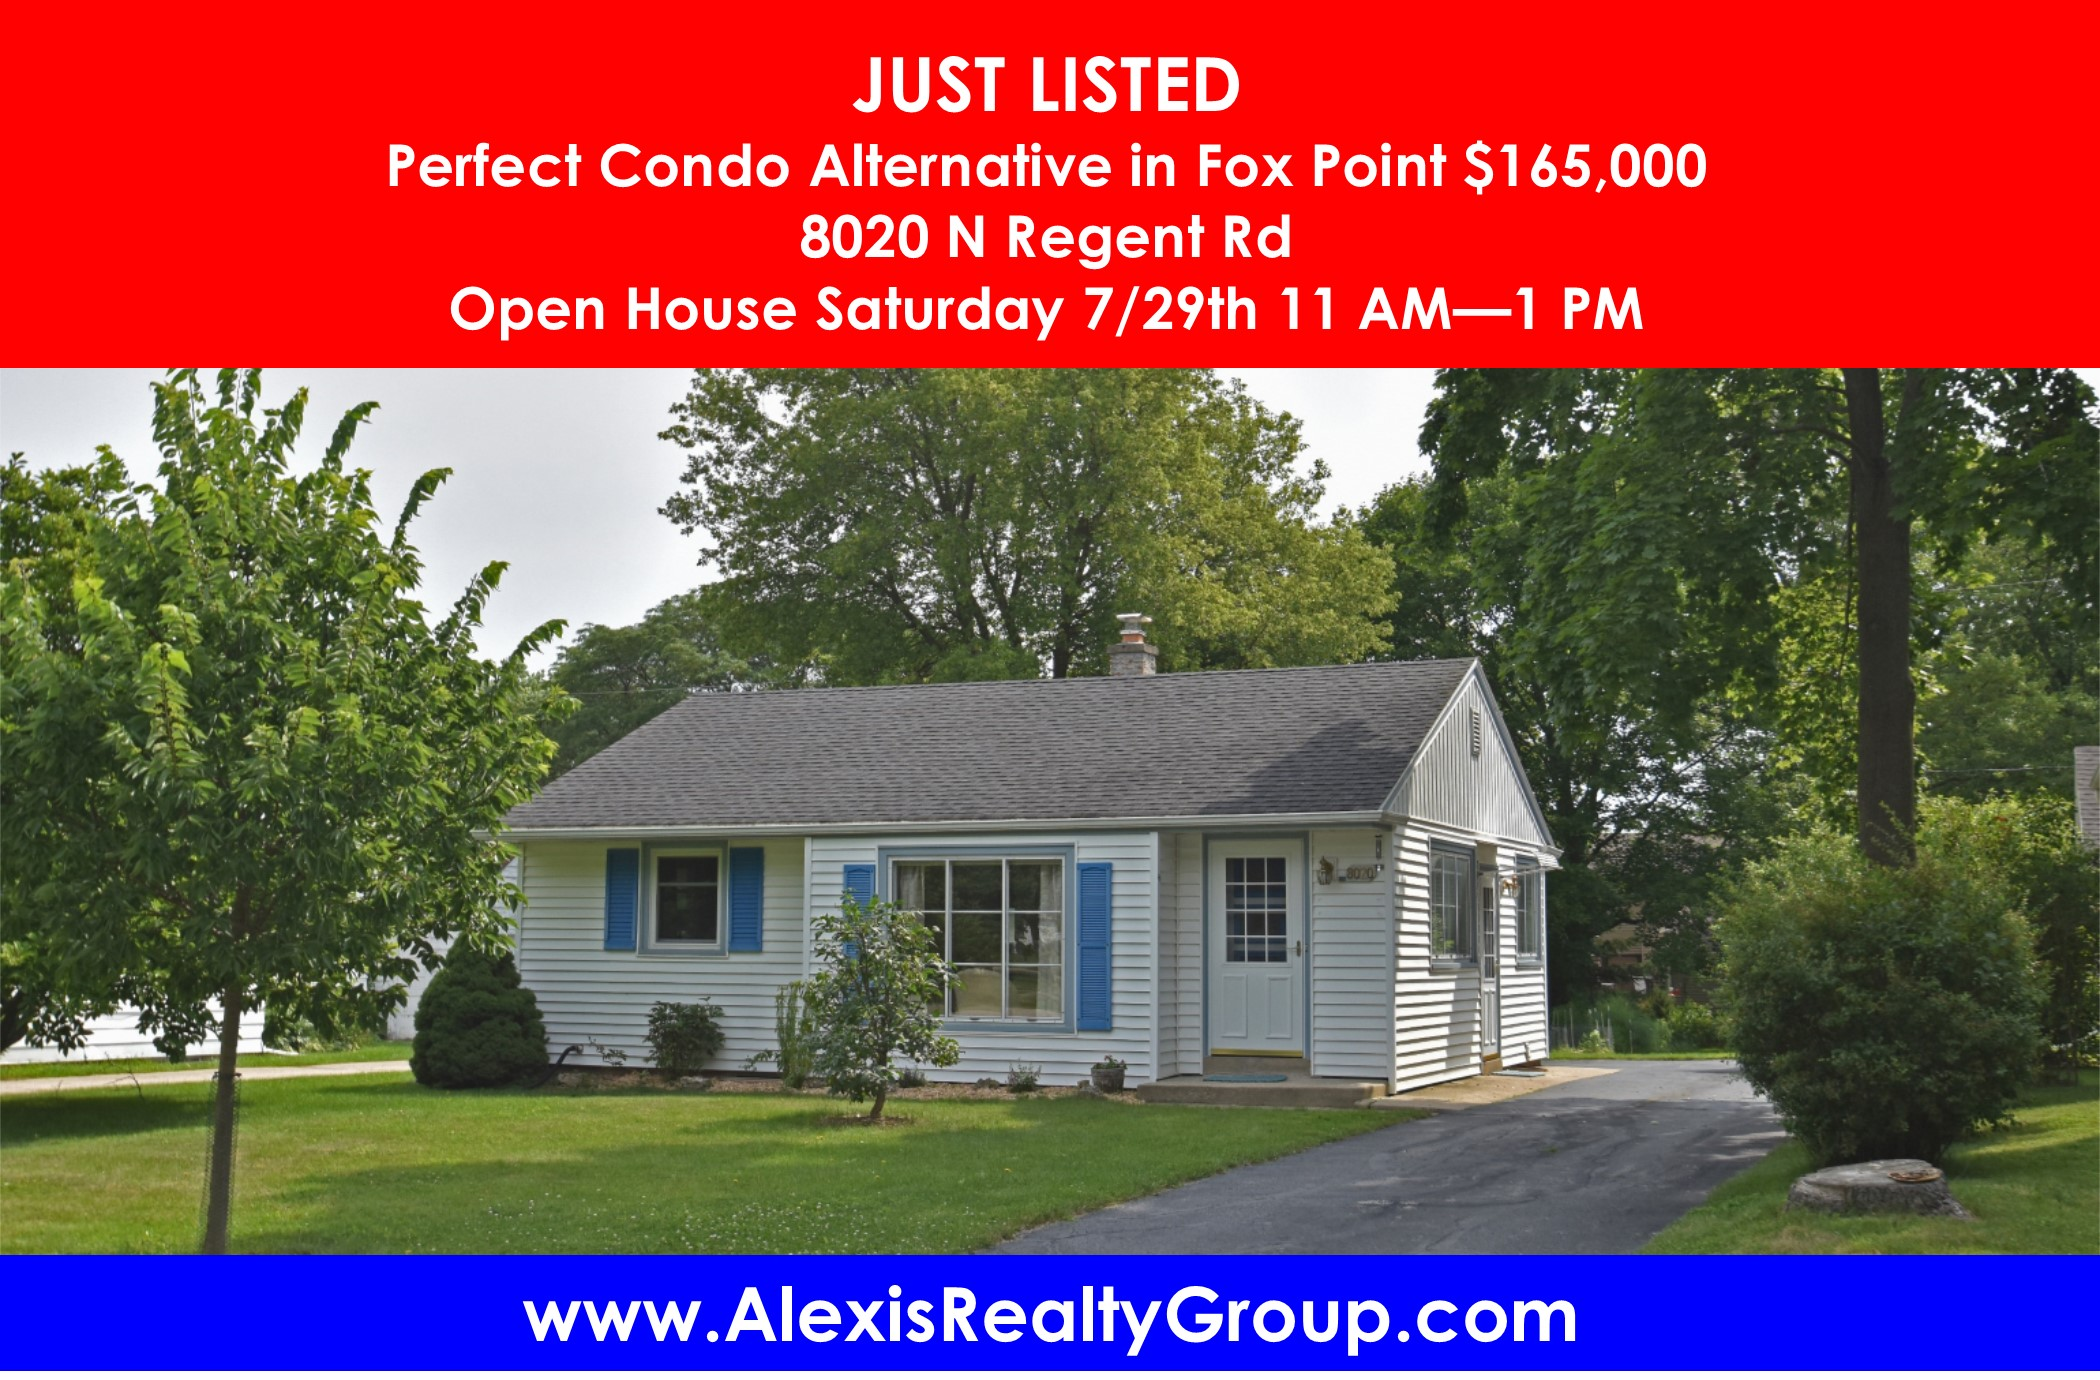 House for Sale 8020 N Regent Rd Fox Point